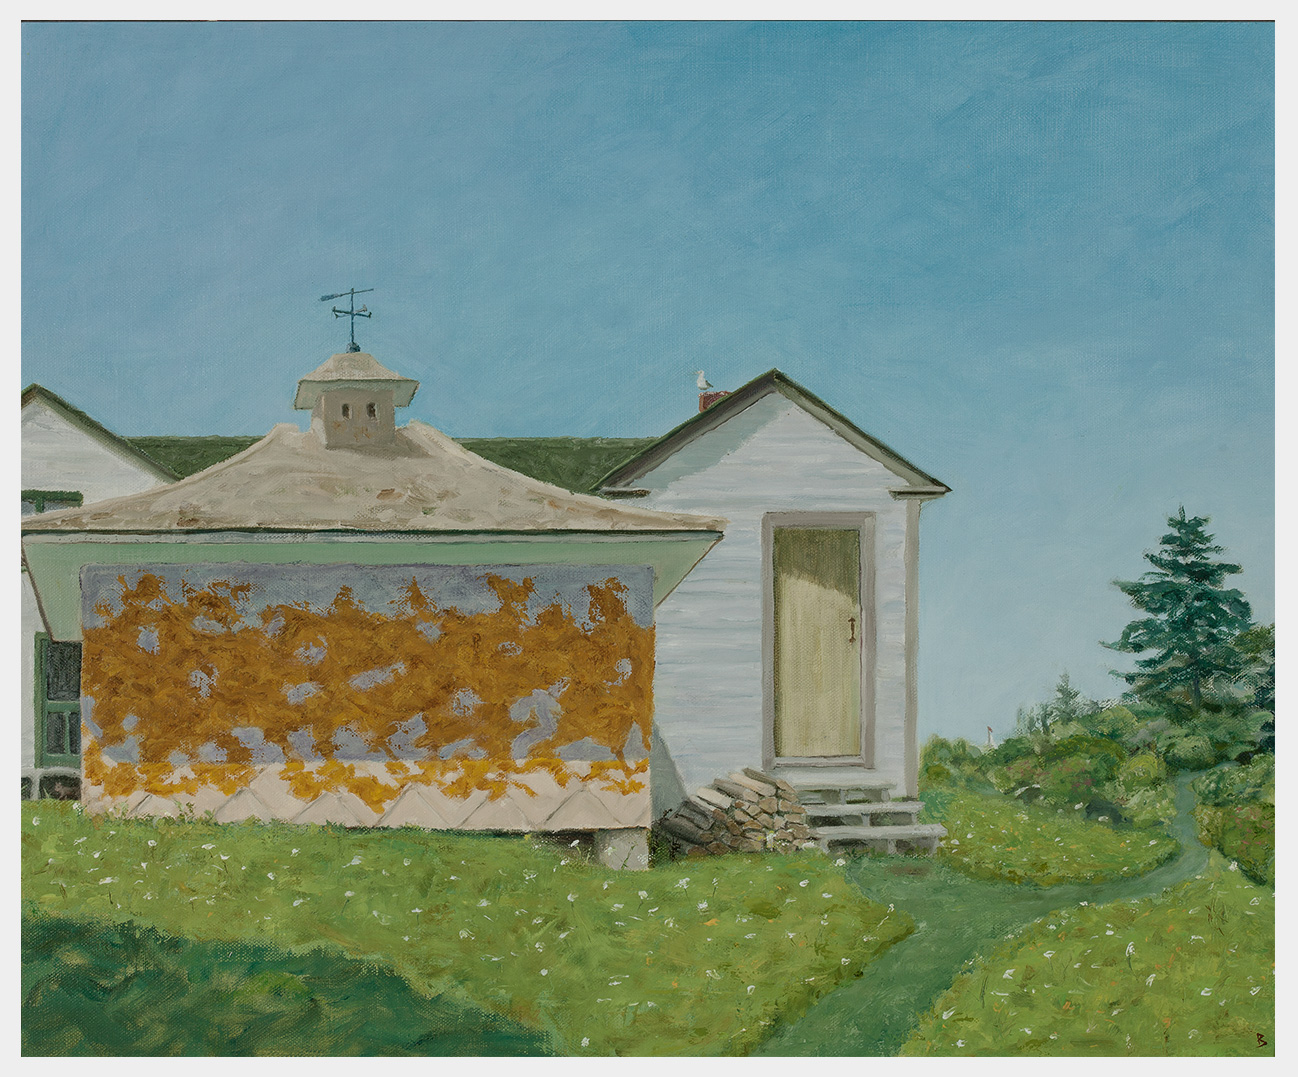 Realistic oil painting of a sunlit pumphouse with lichen on its walls, next to a tool shed with stacked wood, set in a Maine landscape